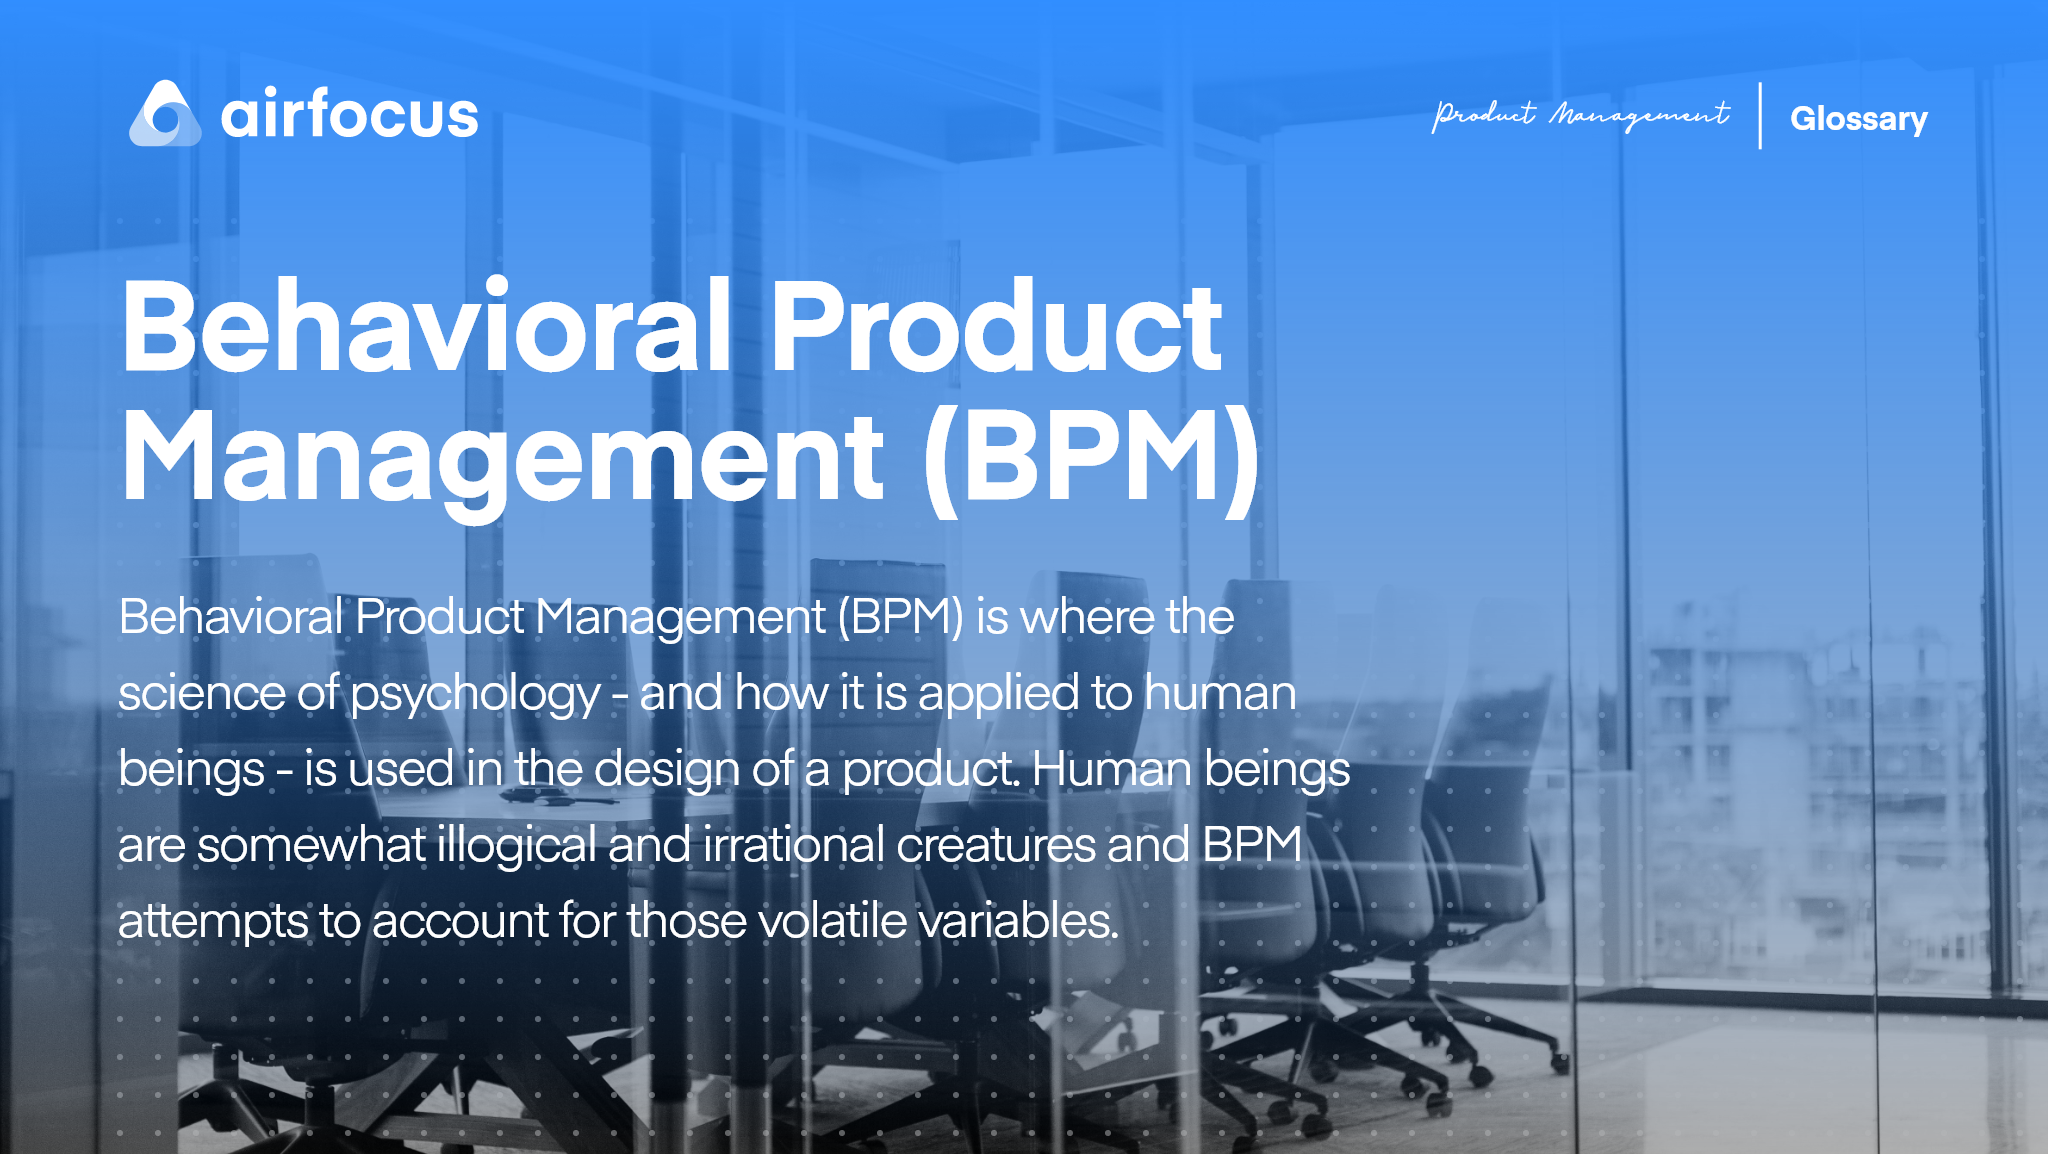 What is Behavioral Product Management (BPM)?